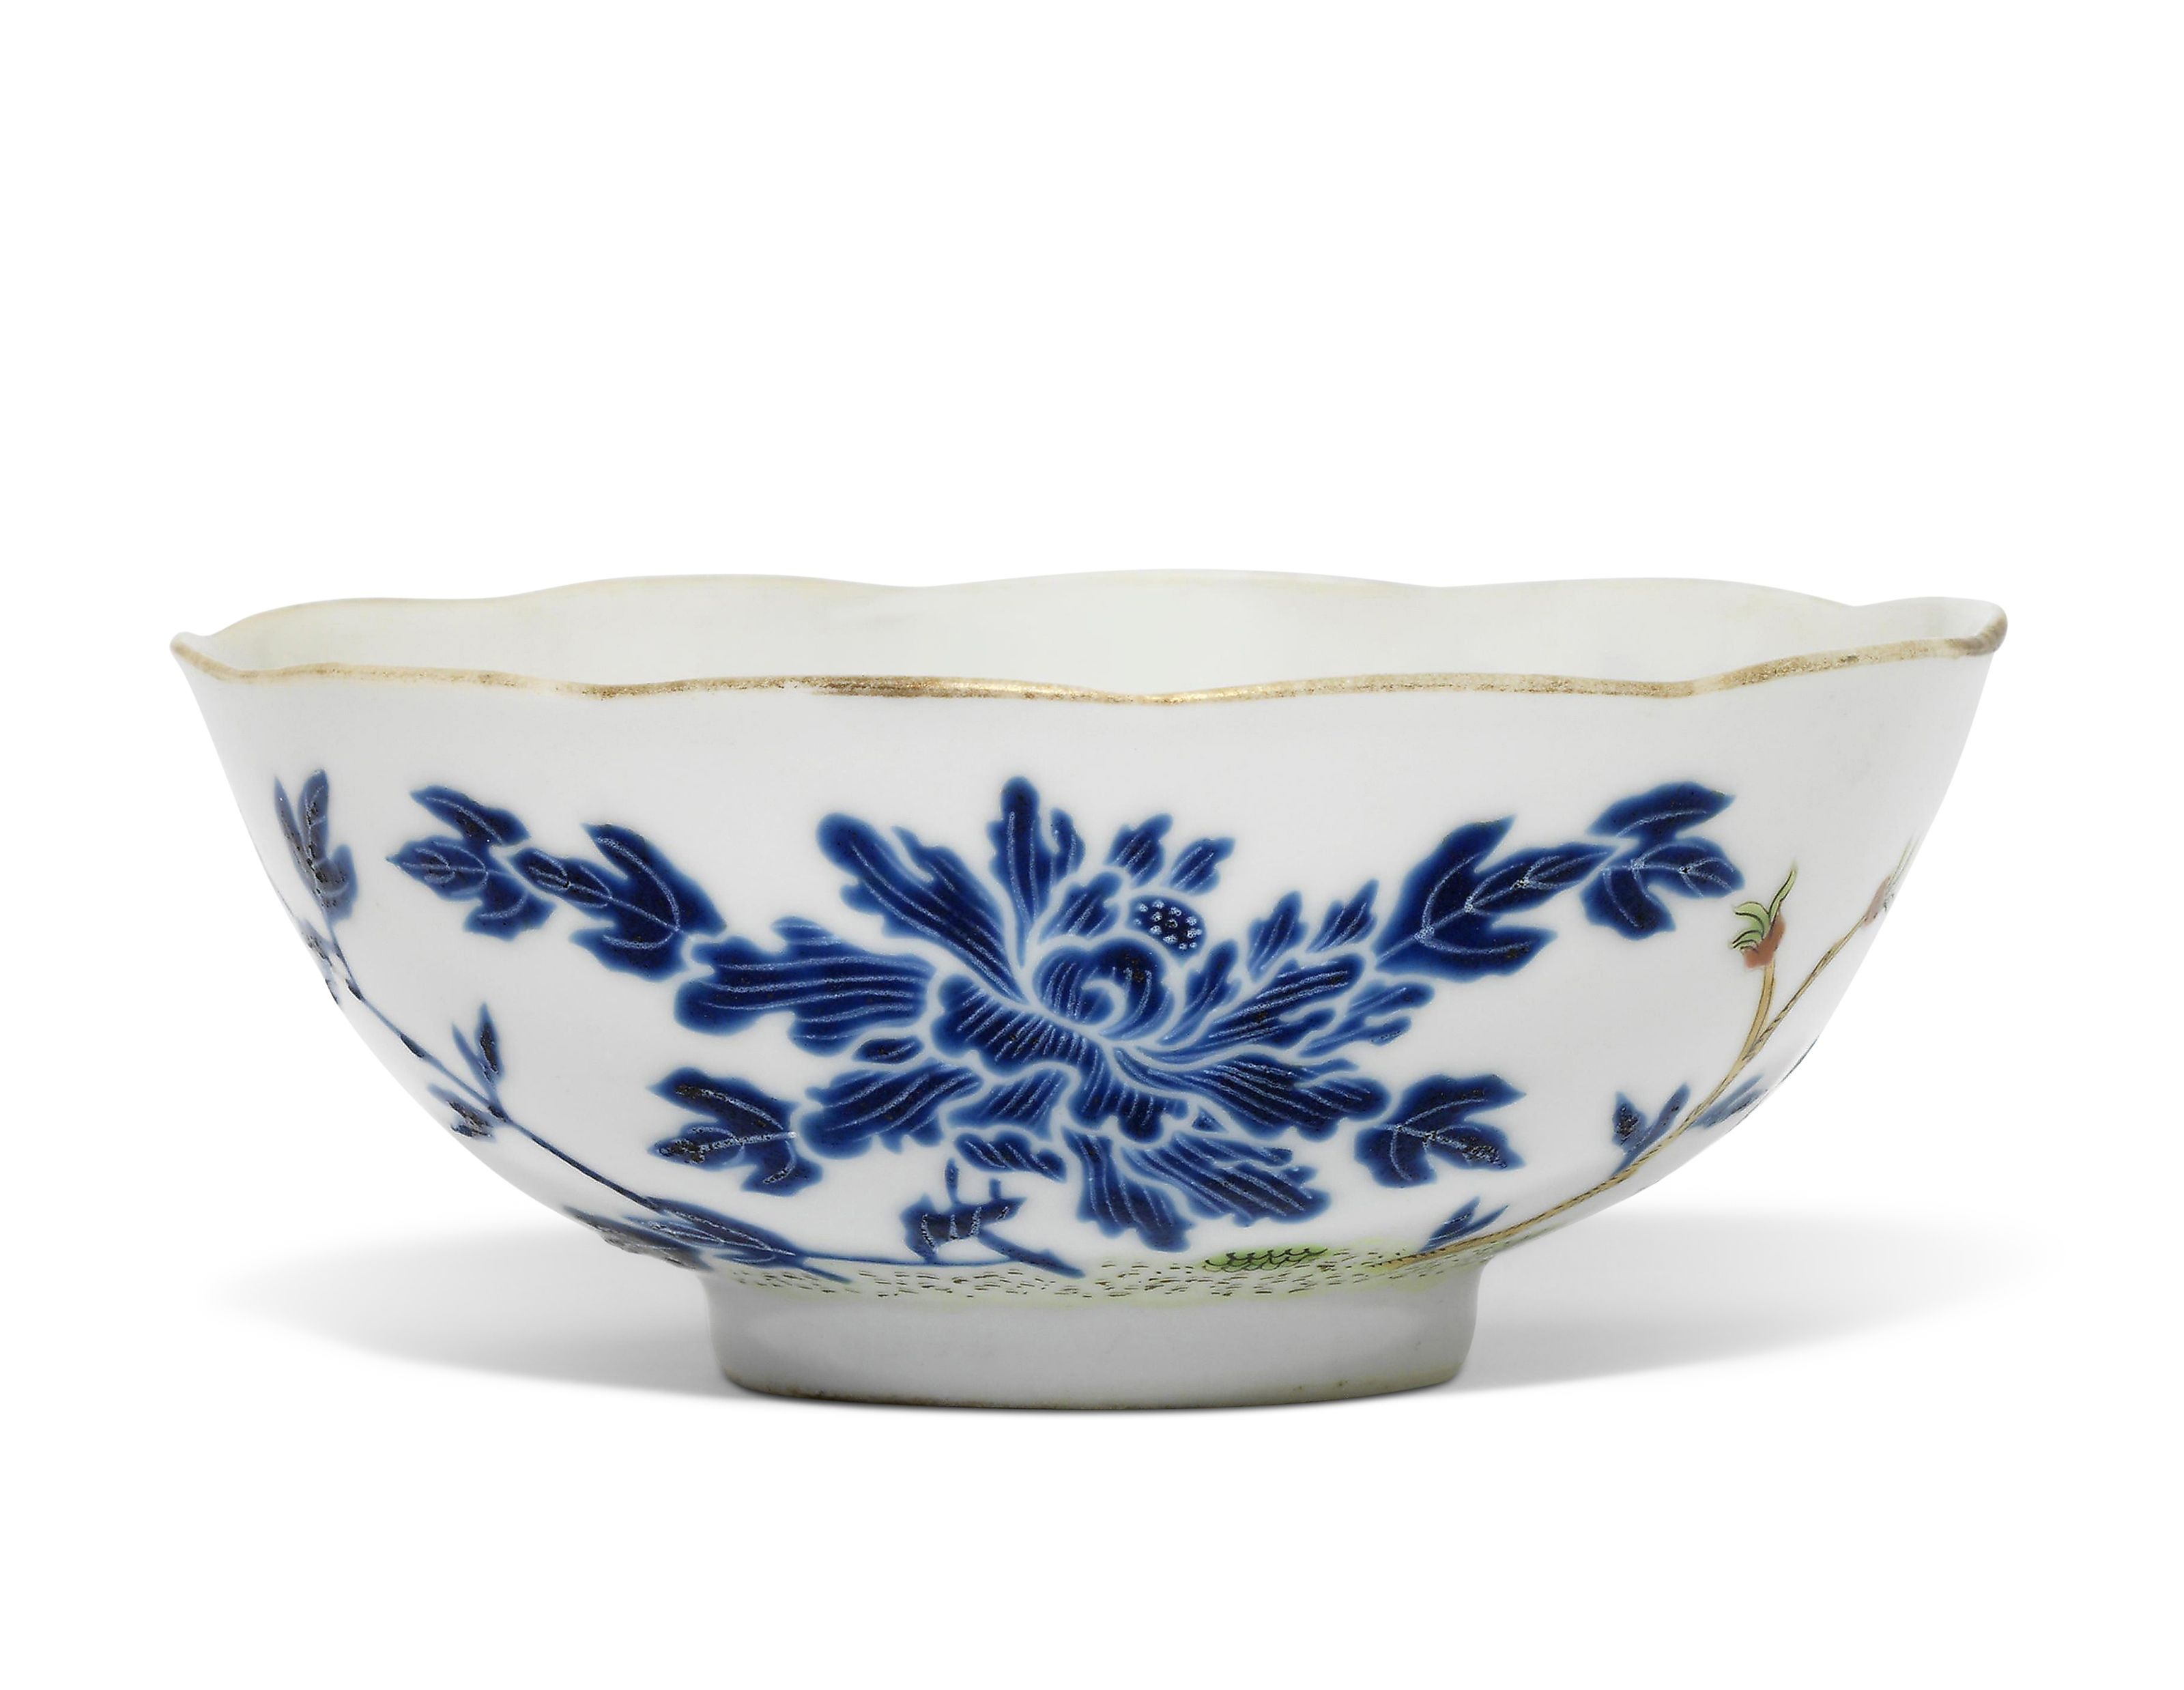 A Blue Enamelled Peony And Butterfly Bowl Decorative Bowls Blue Chinese Ceramics